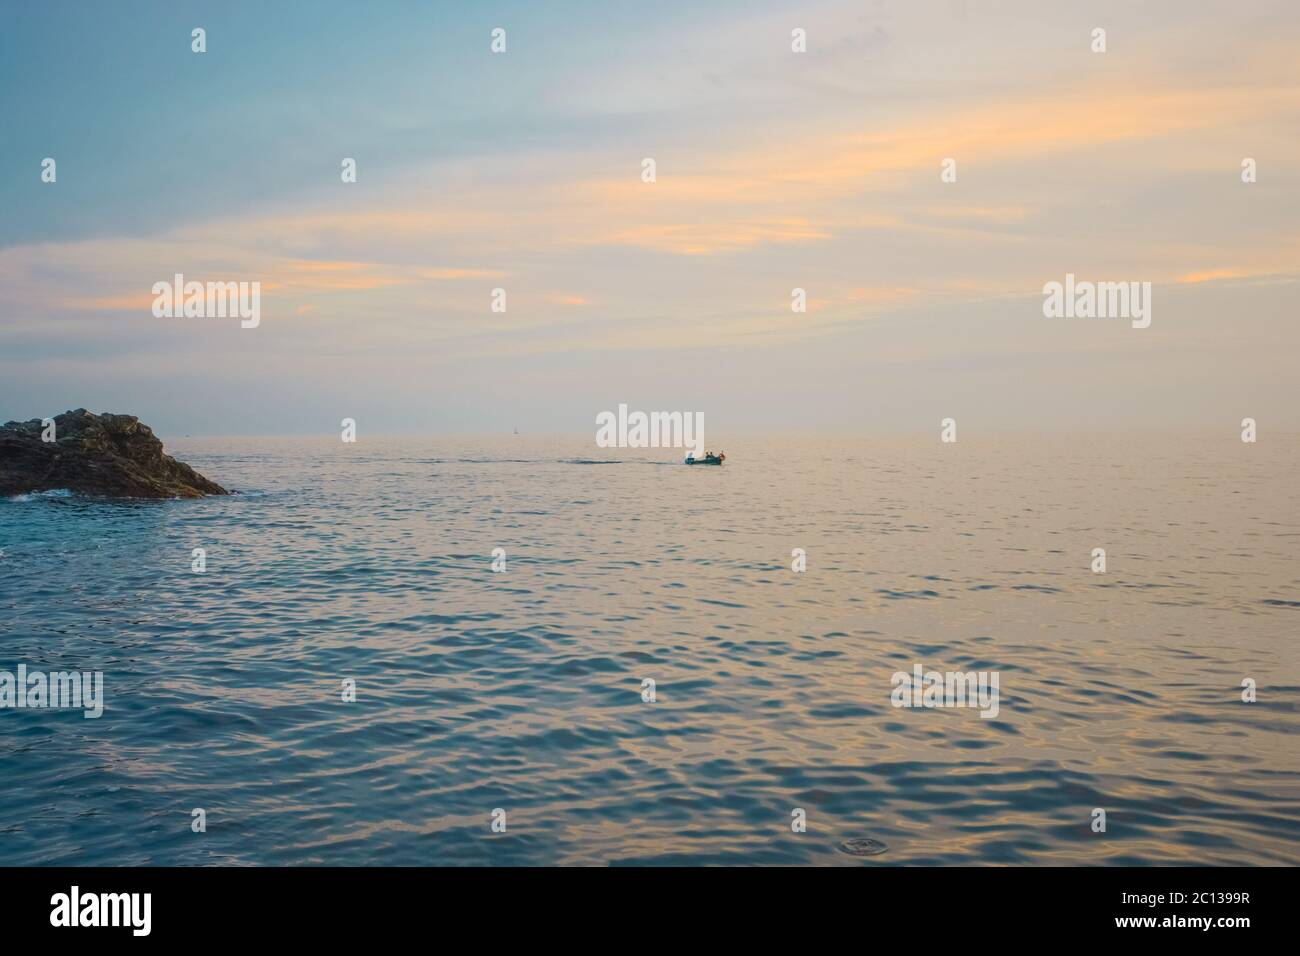 View from the Vernazza Harbor in Cinque Terre, Italy, as a small boat heads out towards the sunset on the Ligurian coast. Stock Photo